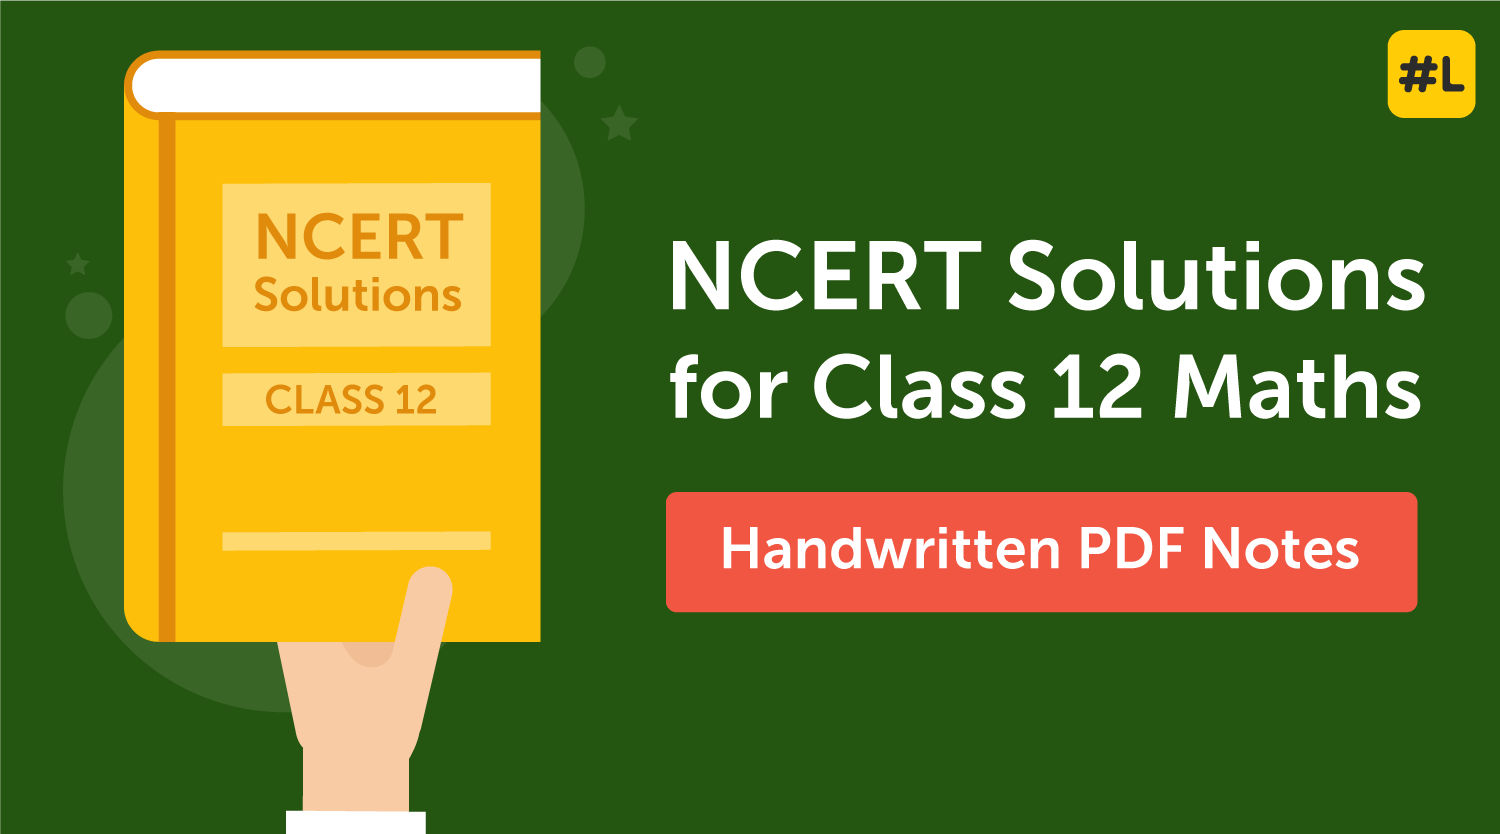 ncert solutions class 12 maths